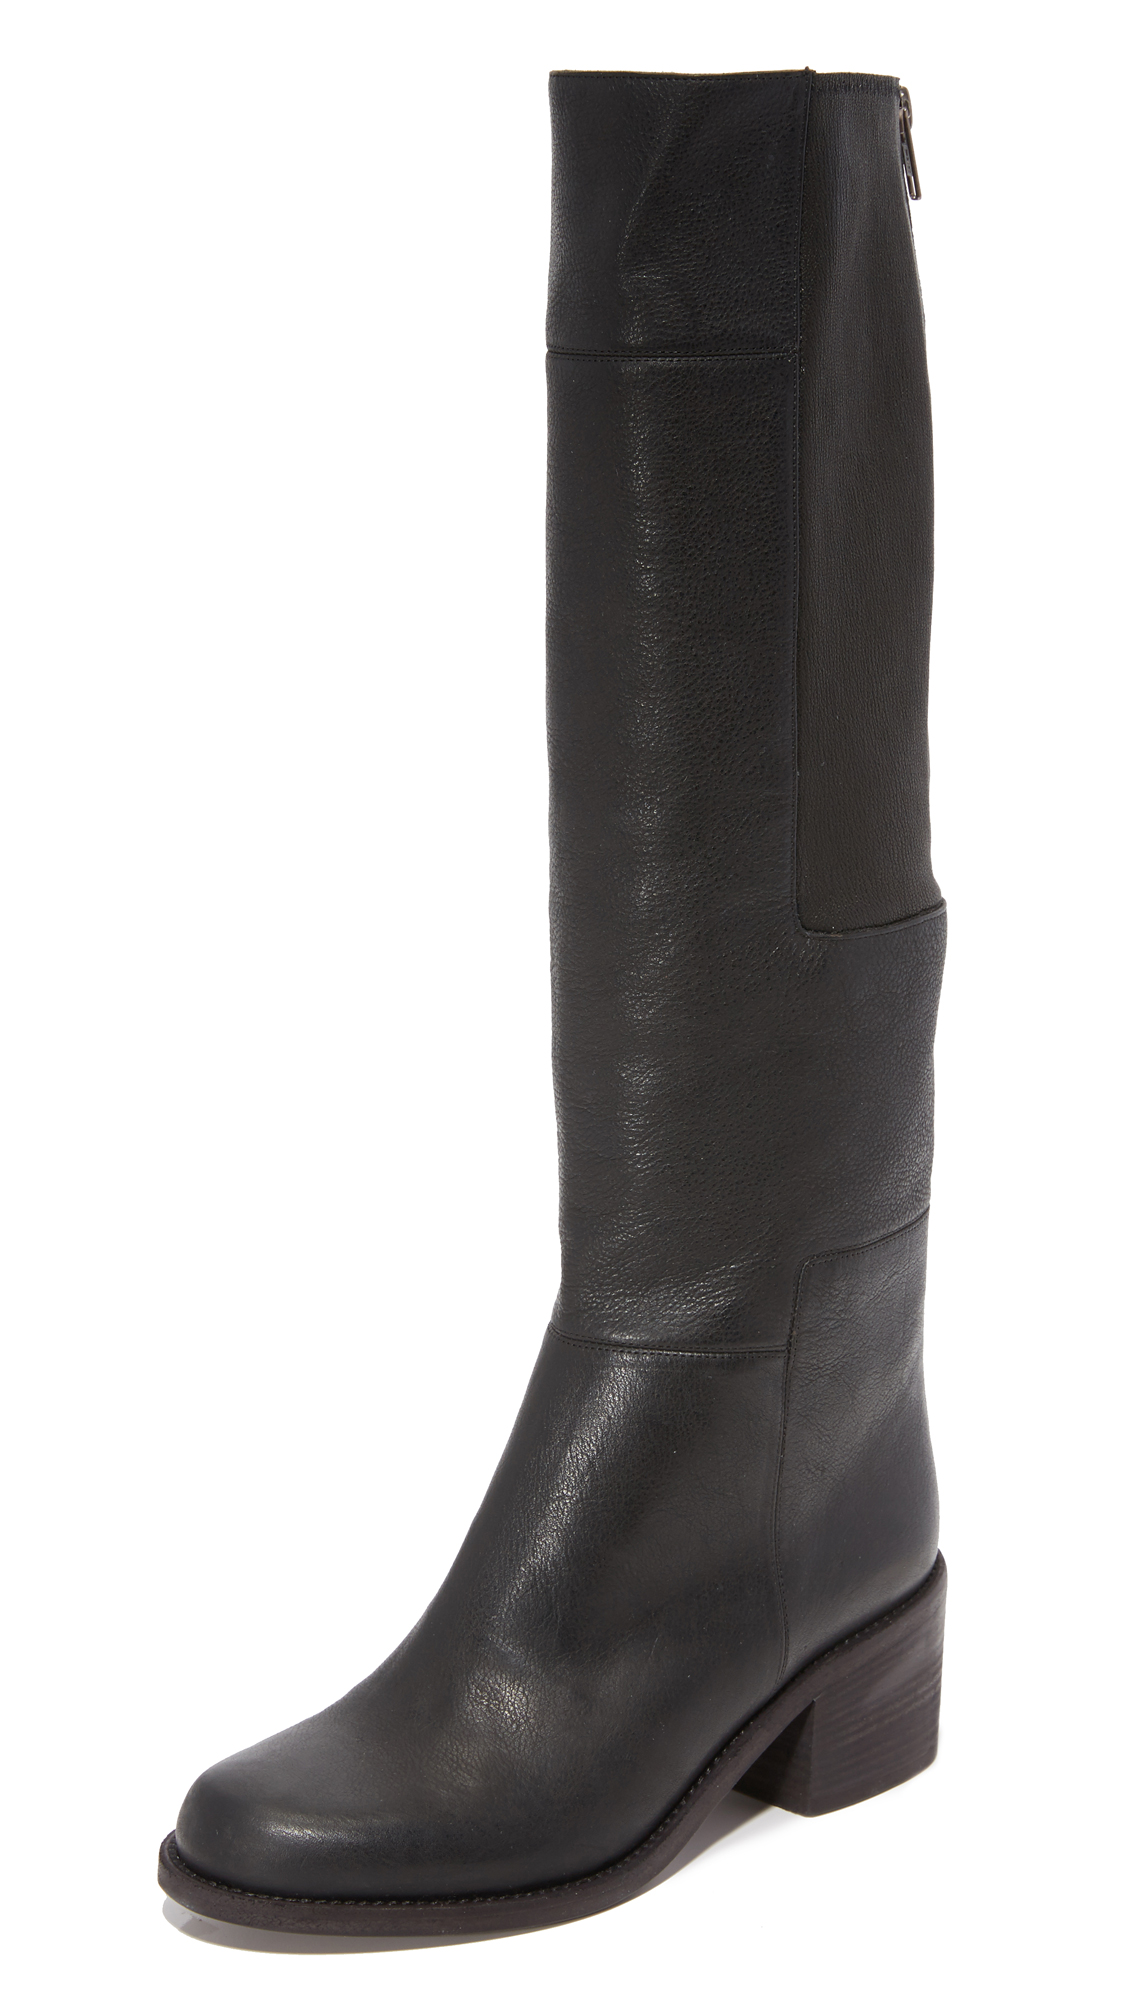 Ld Tuttle The Lost Boot - Black